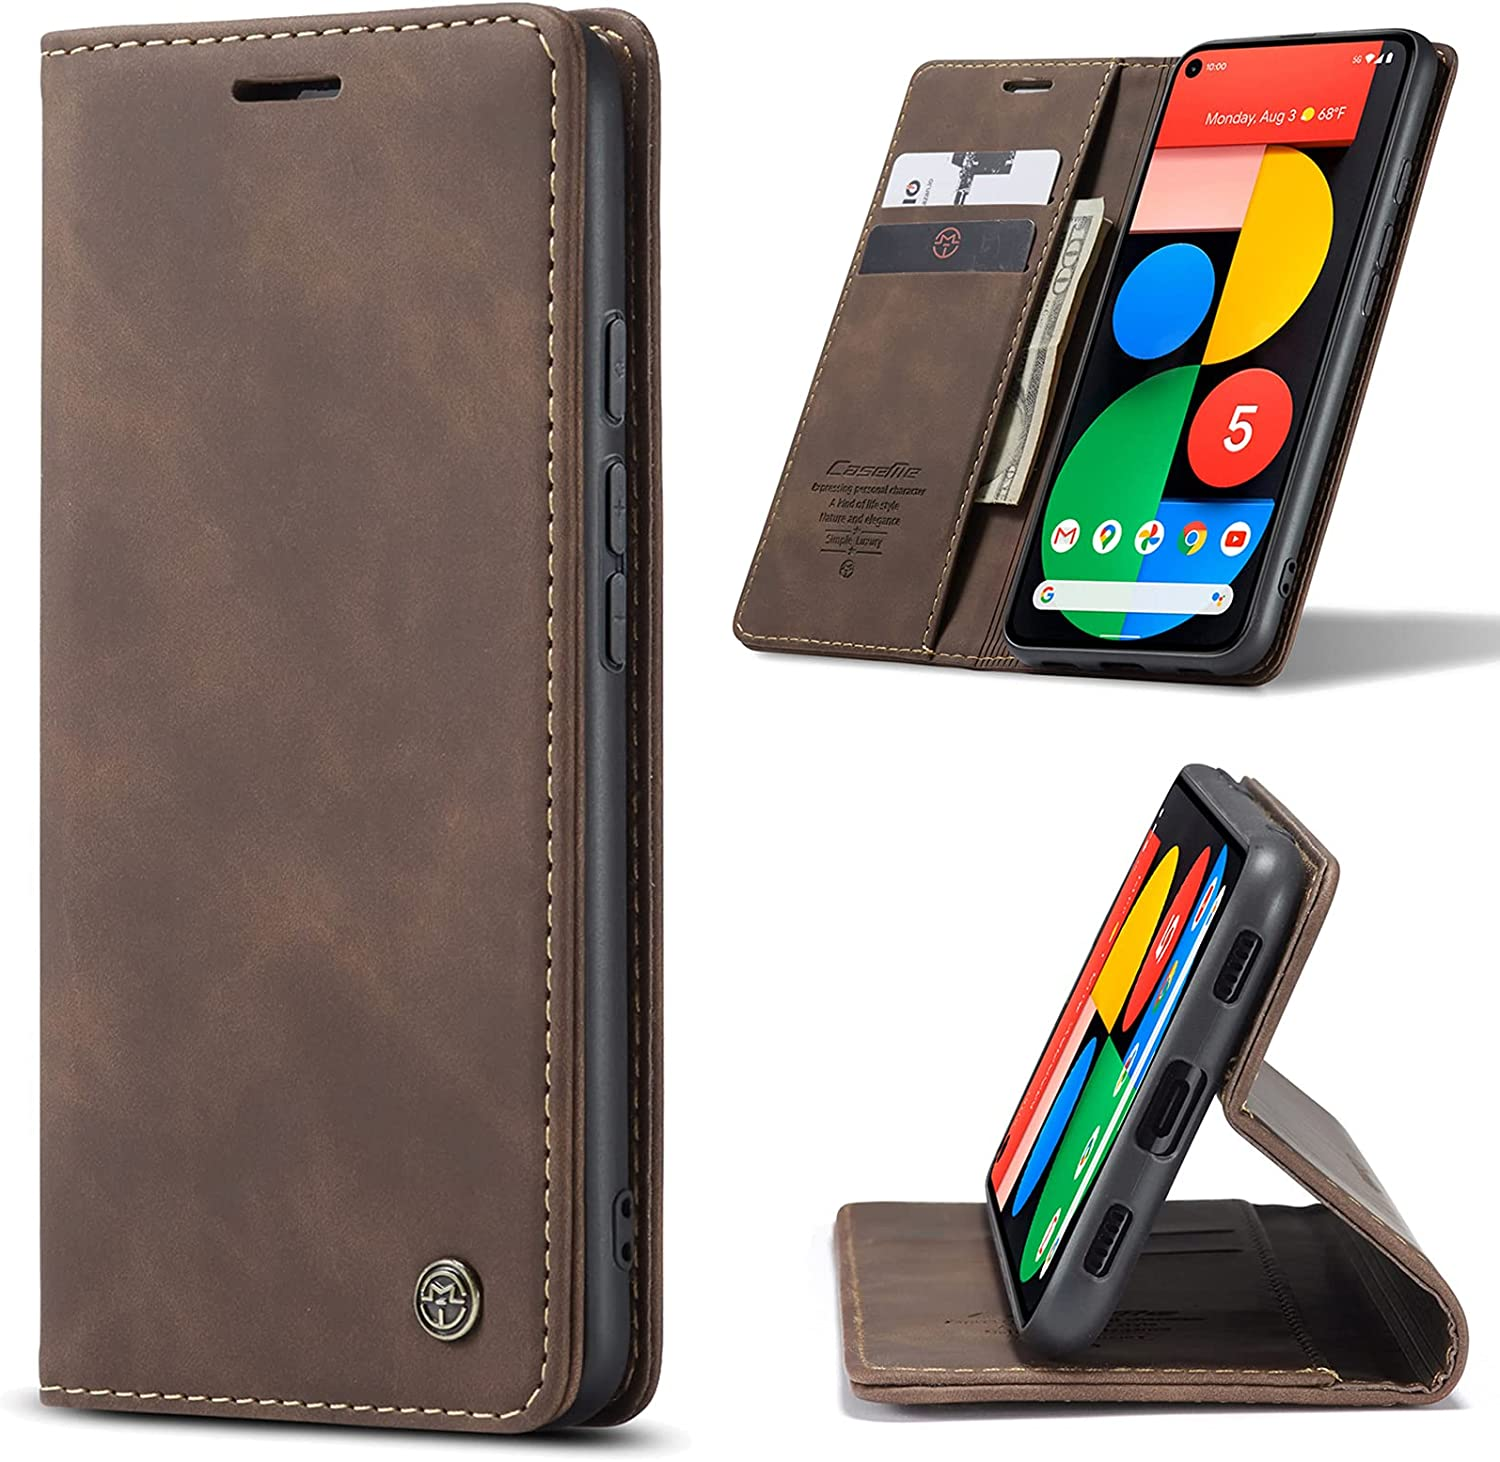 Kowauri Case for Google Pixel 5A 5G,Magnetic Closure Leather Wallet Flip Case with Card Slot Kickstand Shockproof Protective Cover for Google Pixel 5A 5G (Coffee)